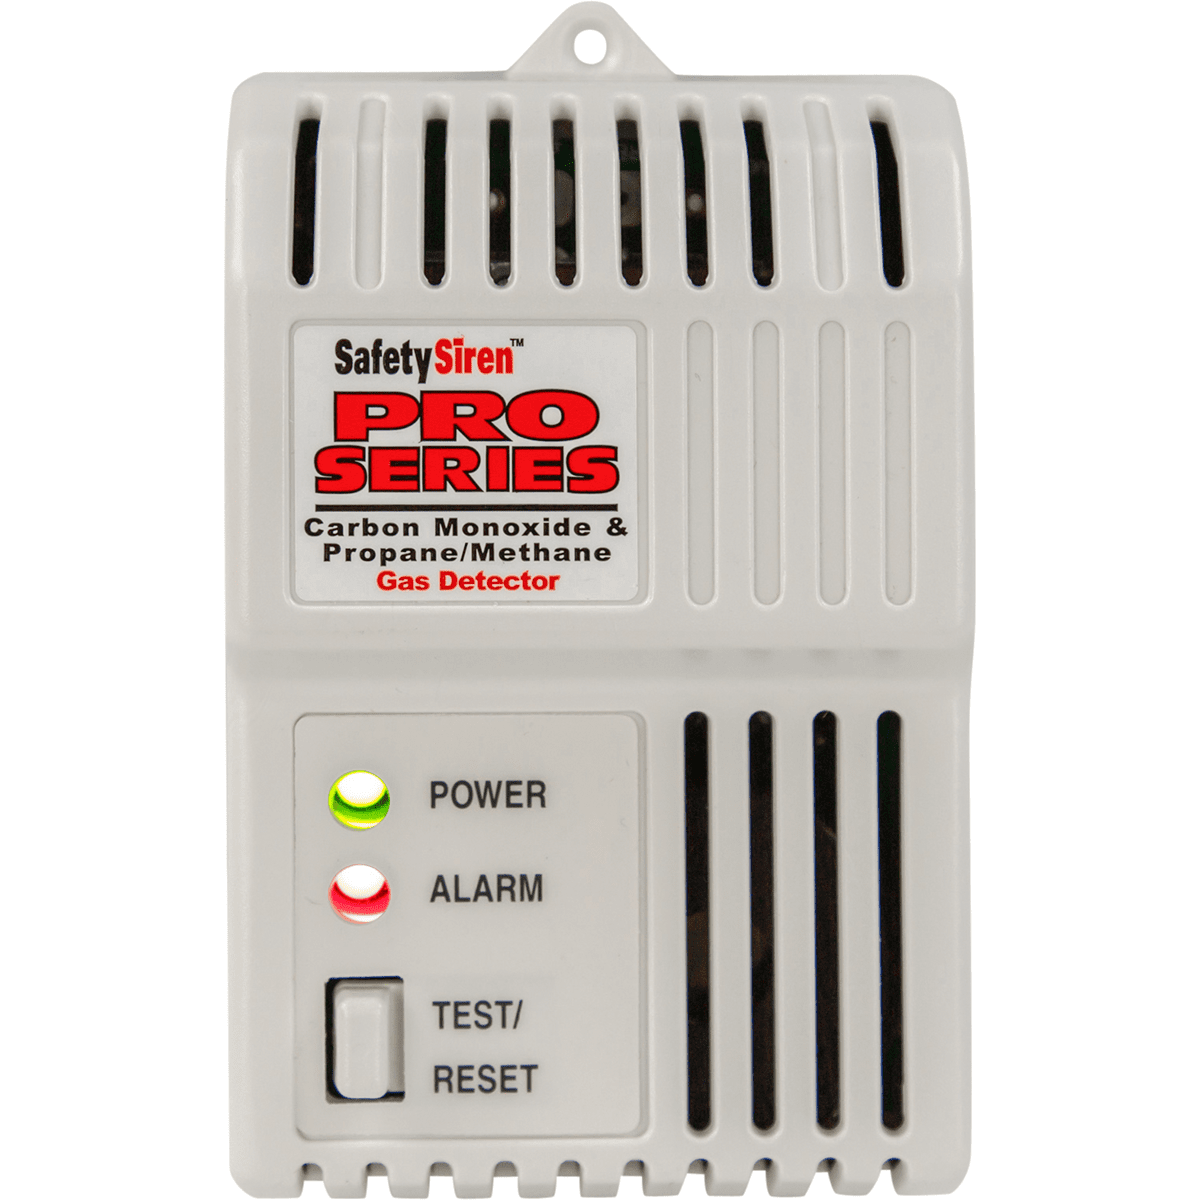 Safety Siren Pro Series Combination Gas Detector